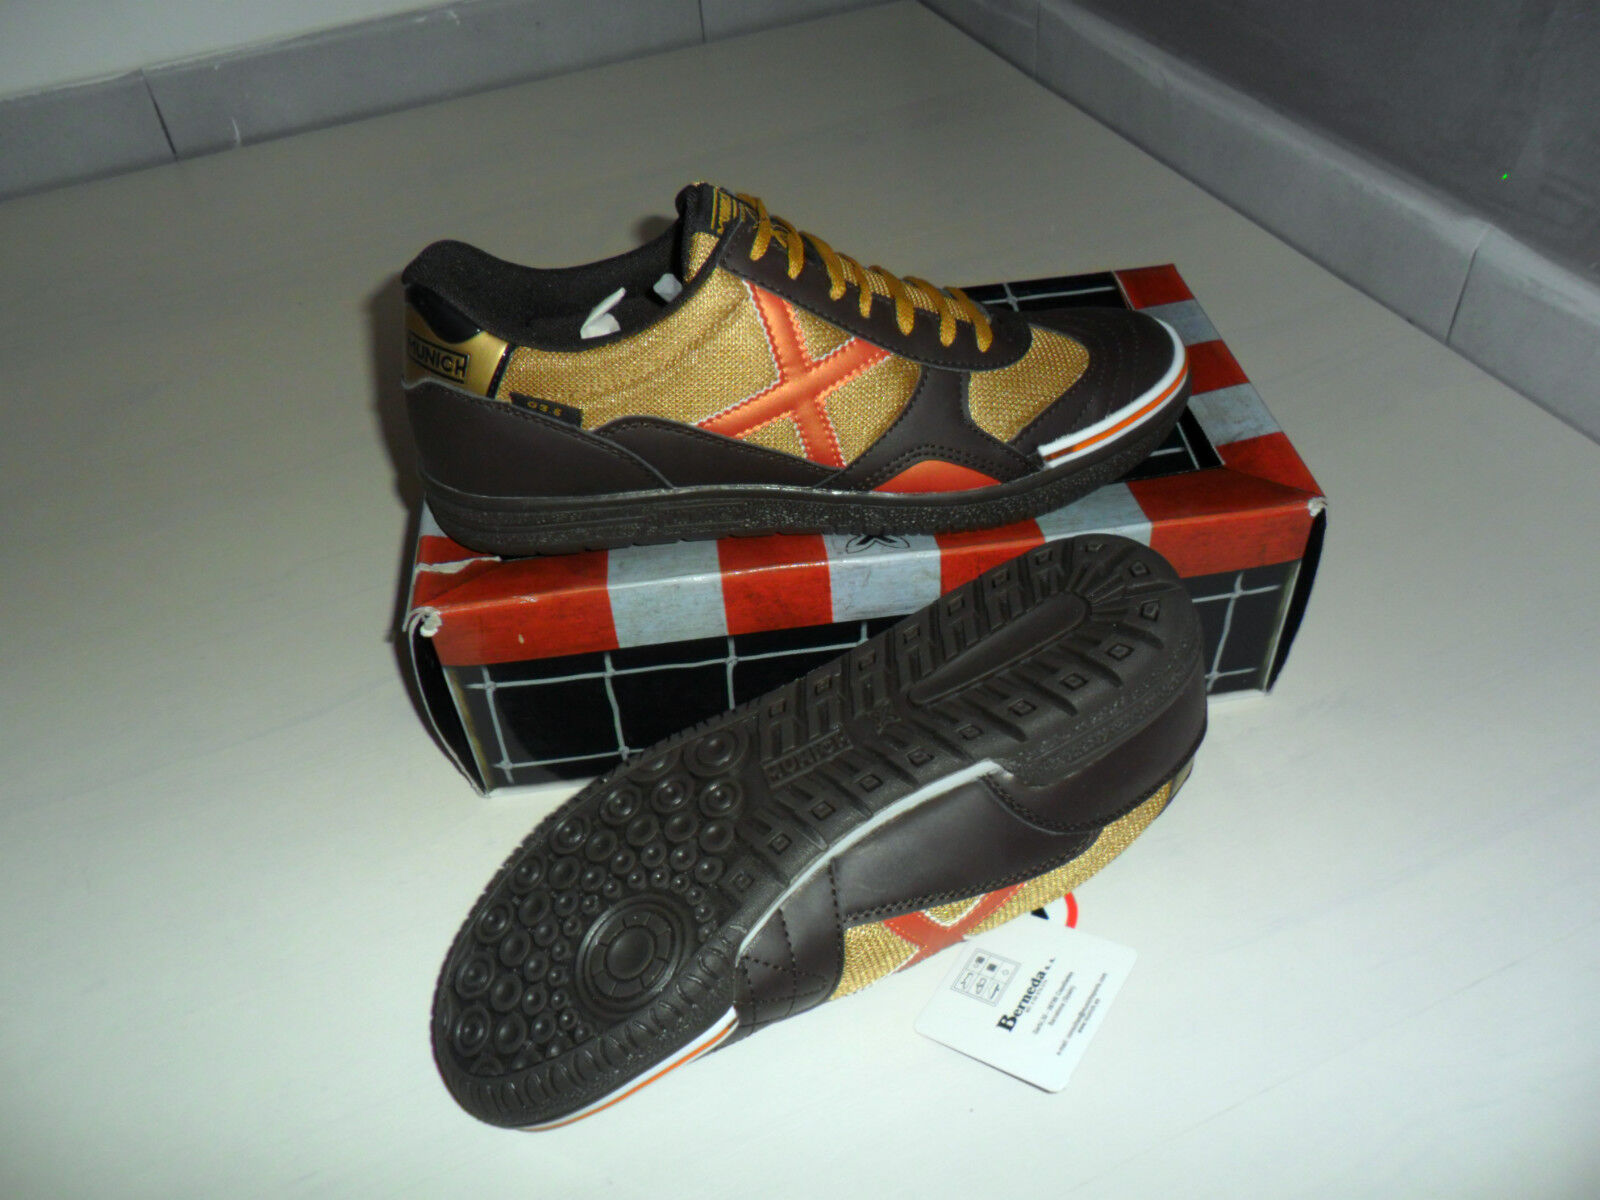 M49 munich gresca g-3, 5 chaussures nr. 44 football indoor sala soccer five